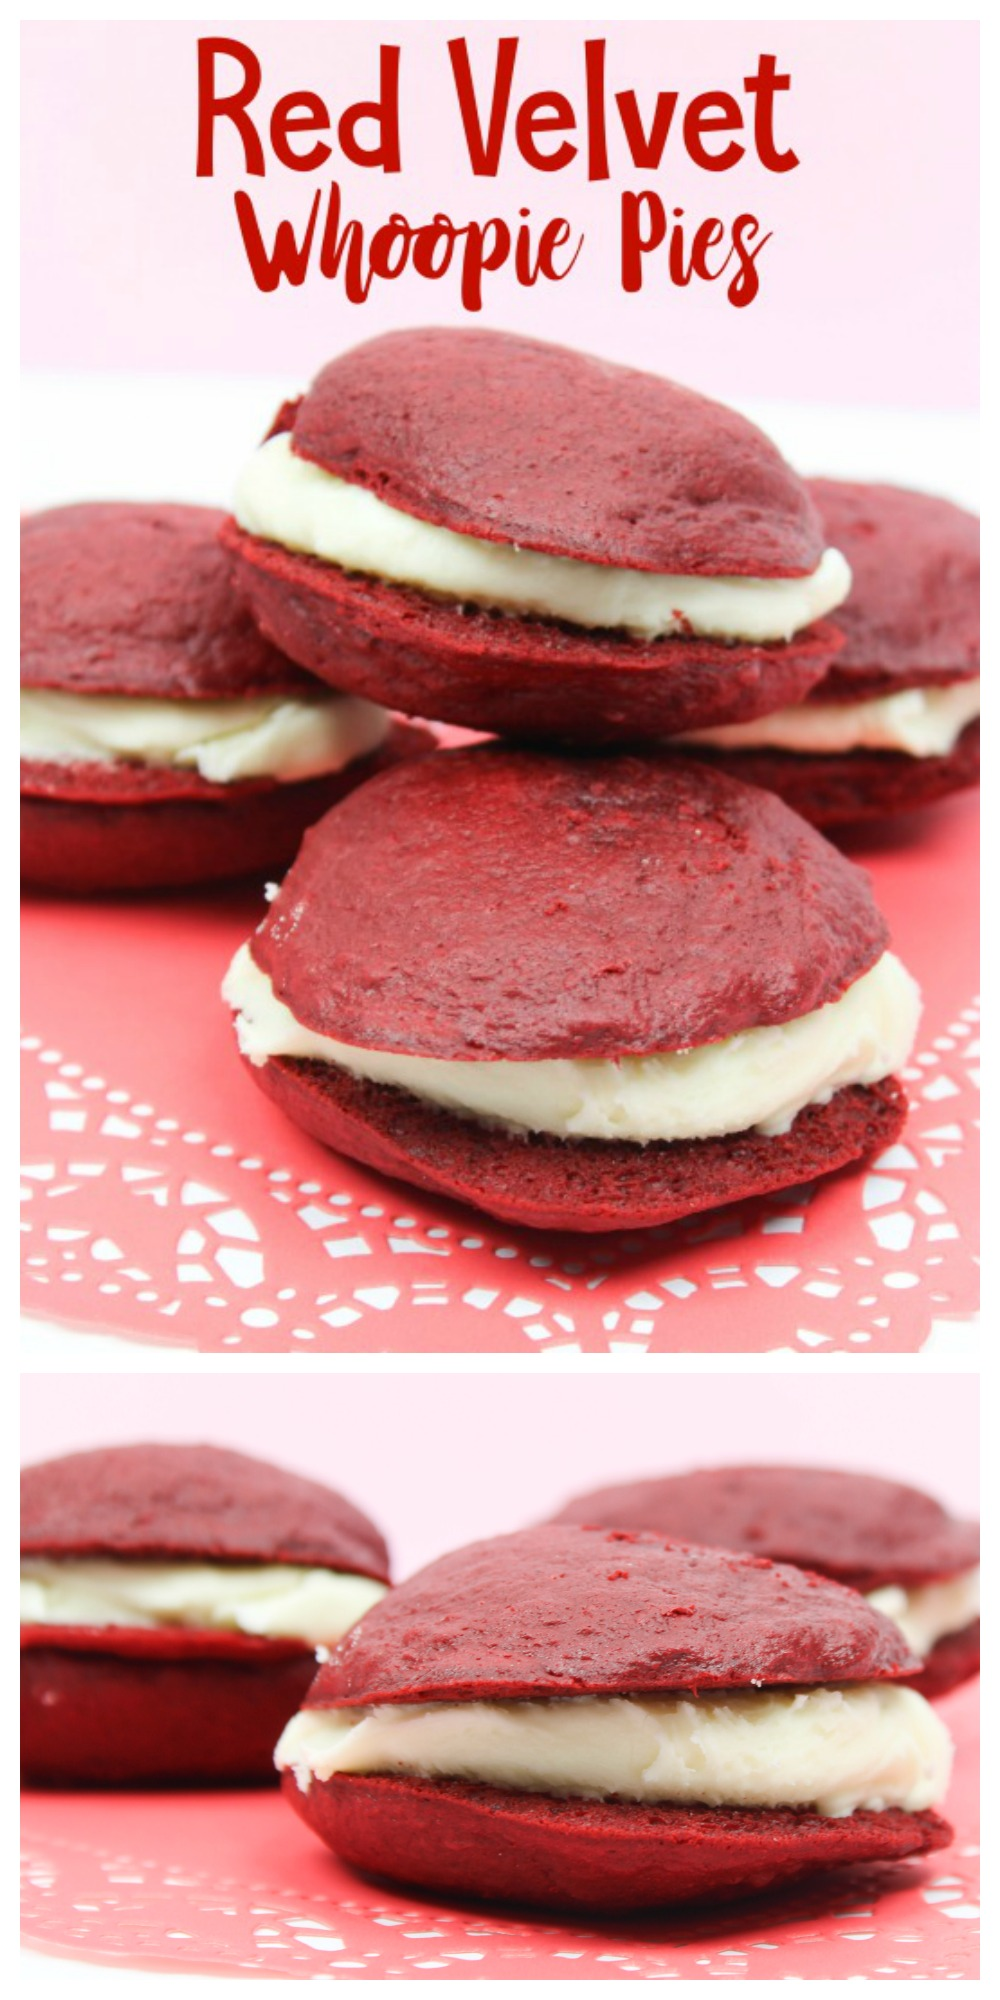 Impress Your Friends with these Red Velvet Whoopie Pies! A box of cake mix, some flour and a tub of frosting are the only things you need to make this delicious recipe!